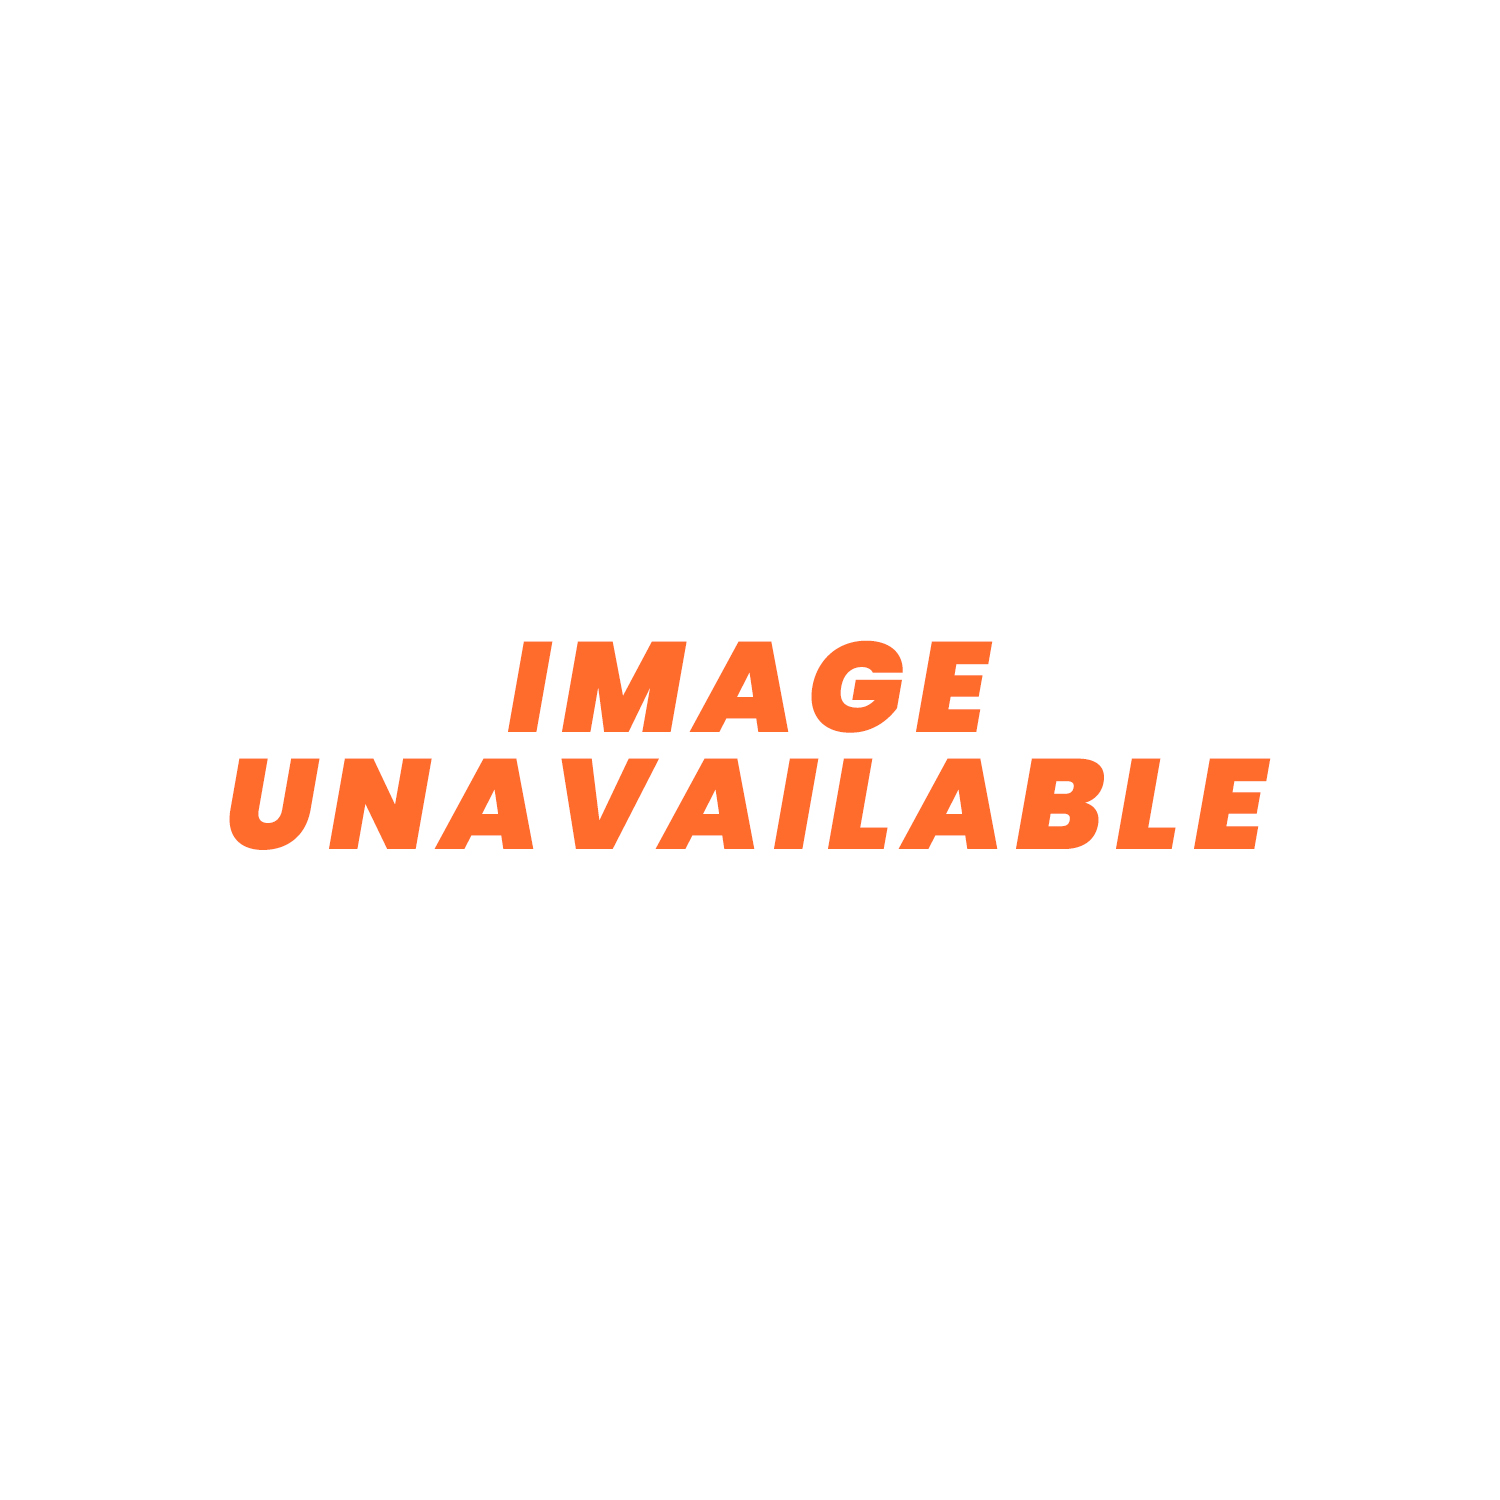 "Wolverine Adhesive Silicone PAD Heater Electric 3.75 x 4.25"" 250w 240v (CSA) 3400083"